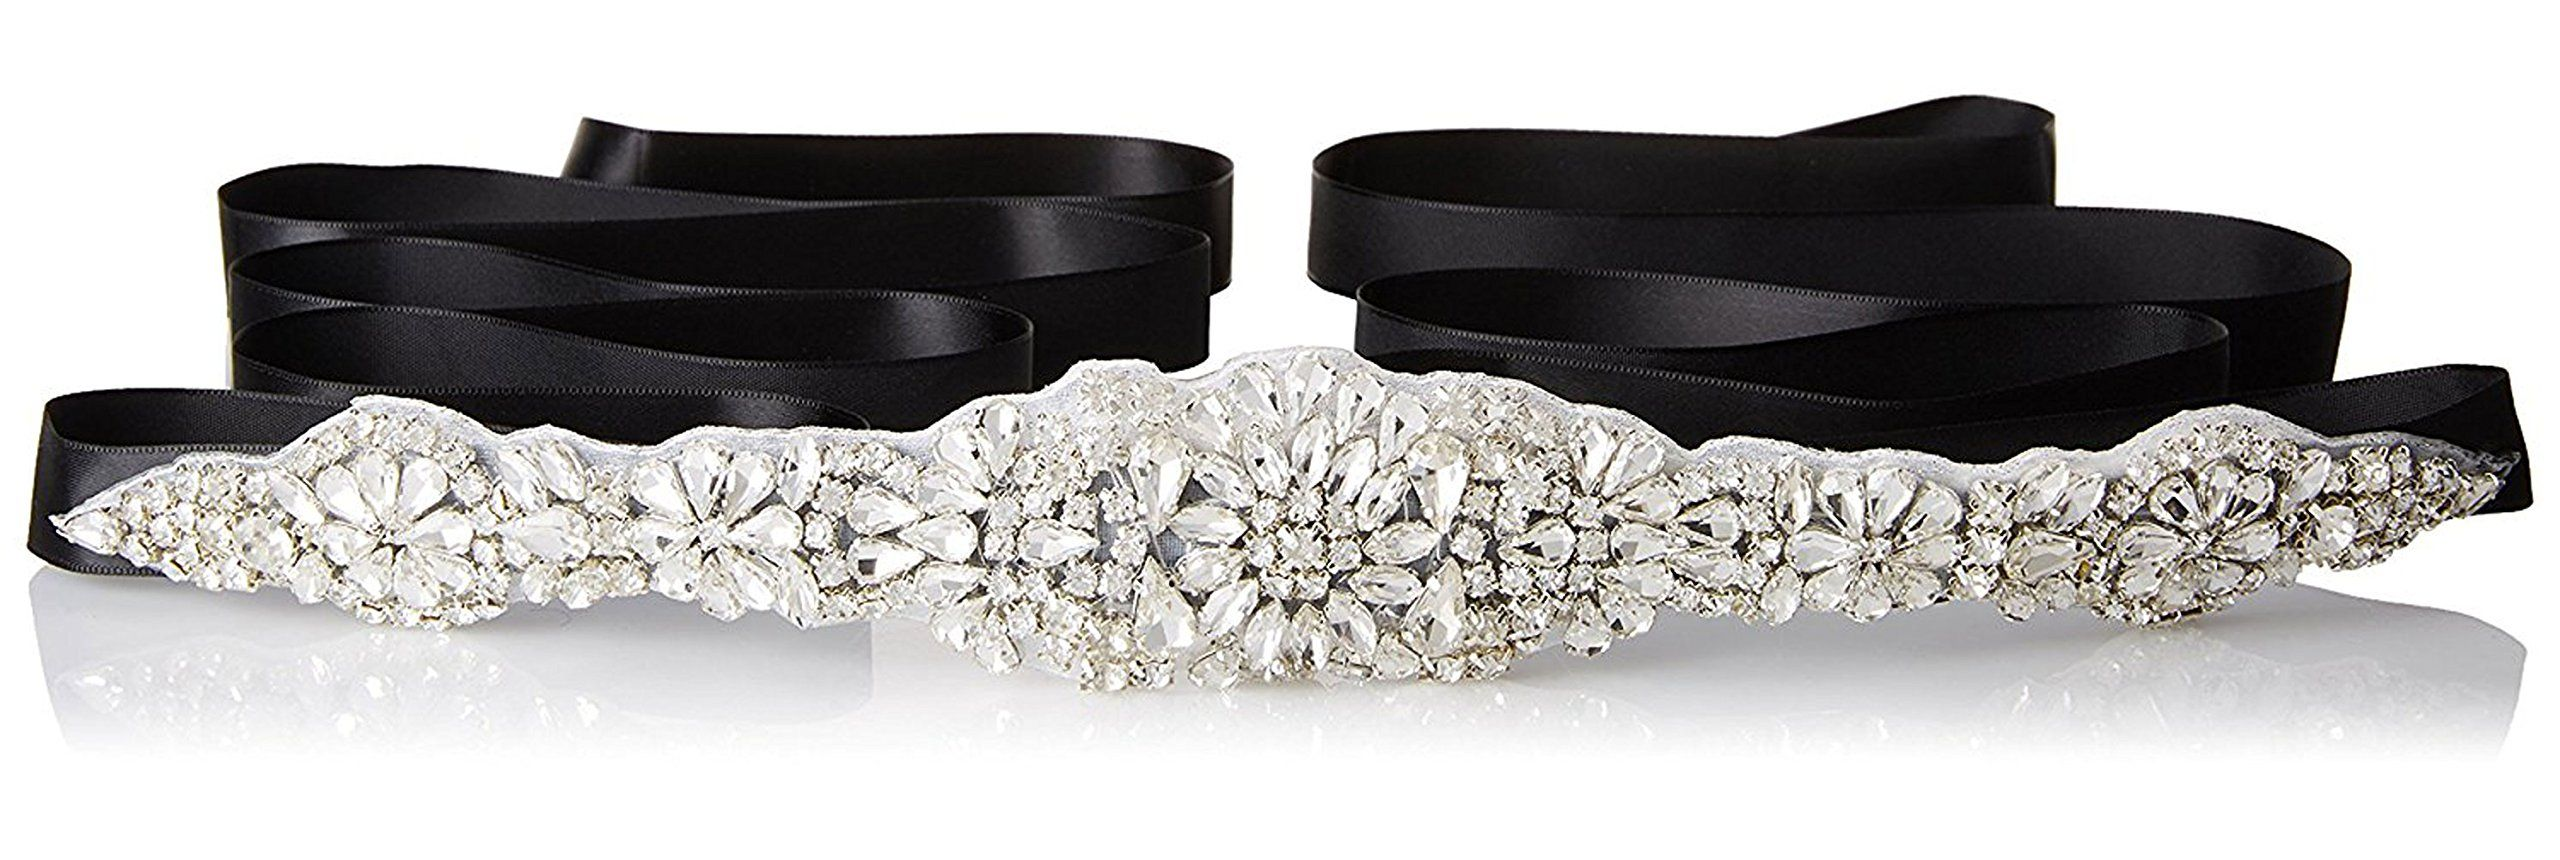 E Clover Bridal Crystal Rhinestone Wedding Dress Sash Belt With